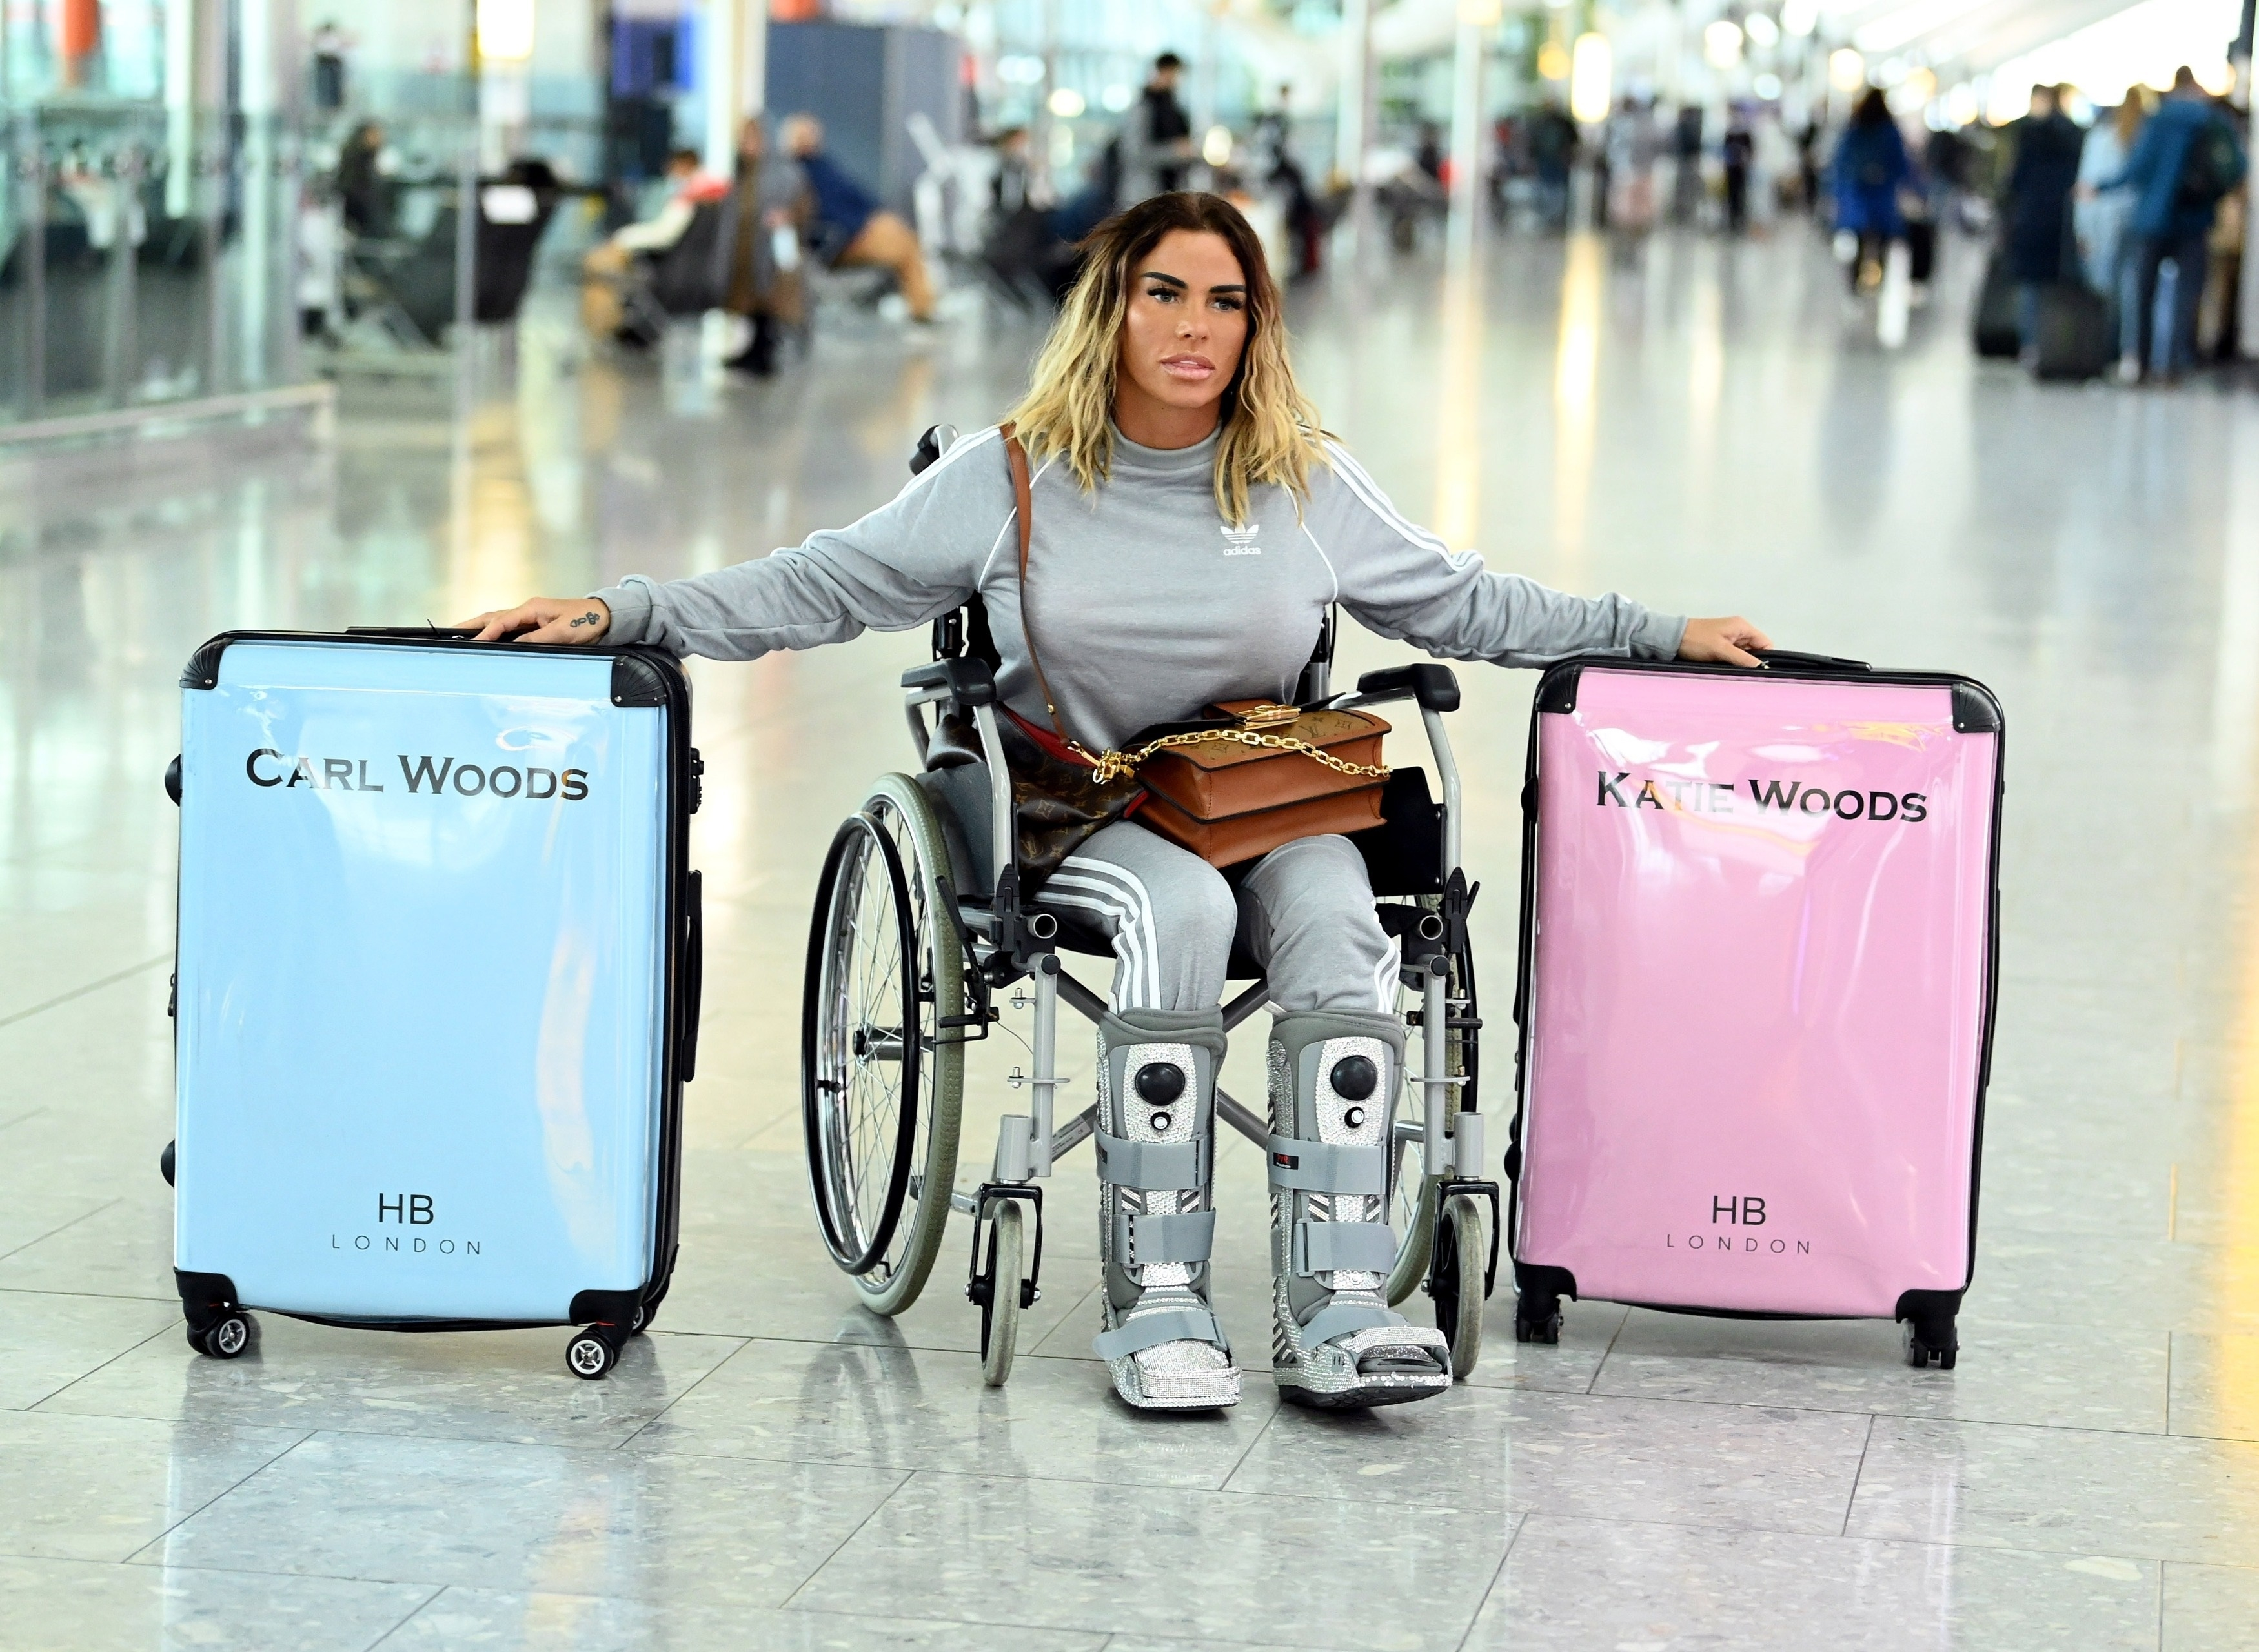 Katie Price jets to the Maldives with her 'married' name on her suitcase after Carl Woods sparked secret wedding rumours